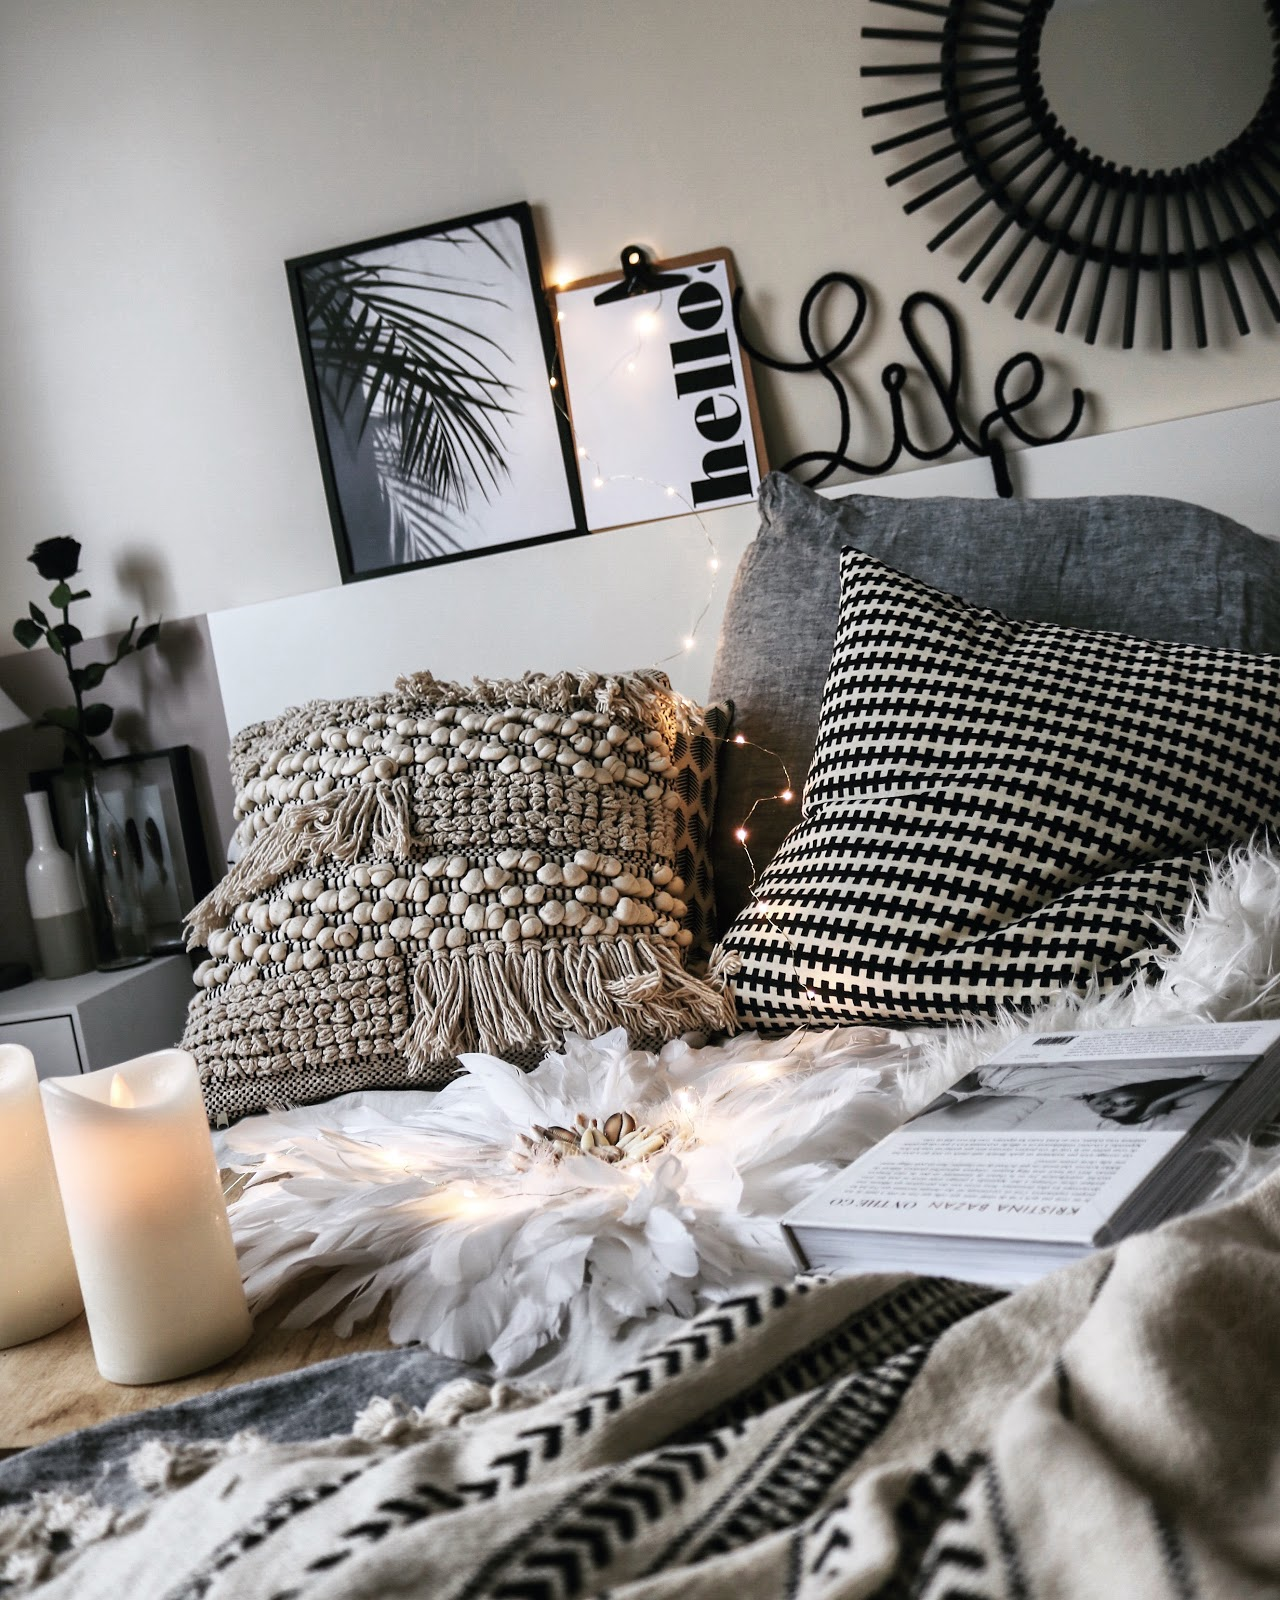 pauline-dress-home-bedroom-tour-besancon-blog-mode-deco-lifestyle-ethnique-chic-boheme-life-decoration